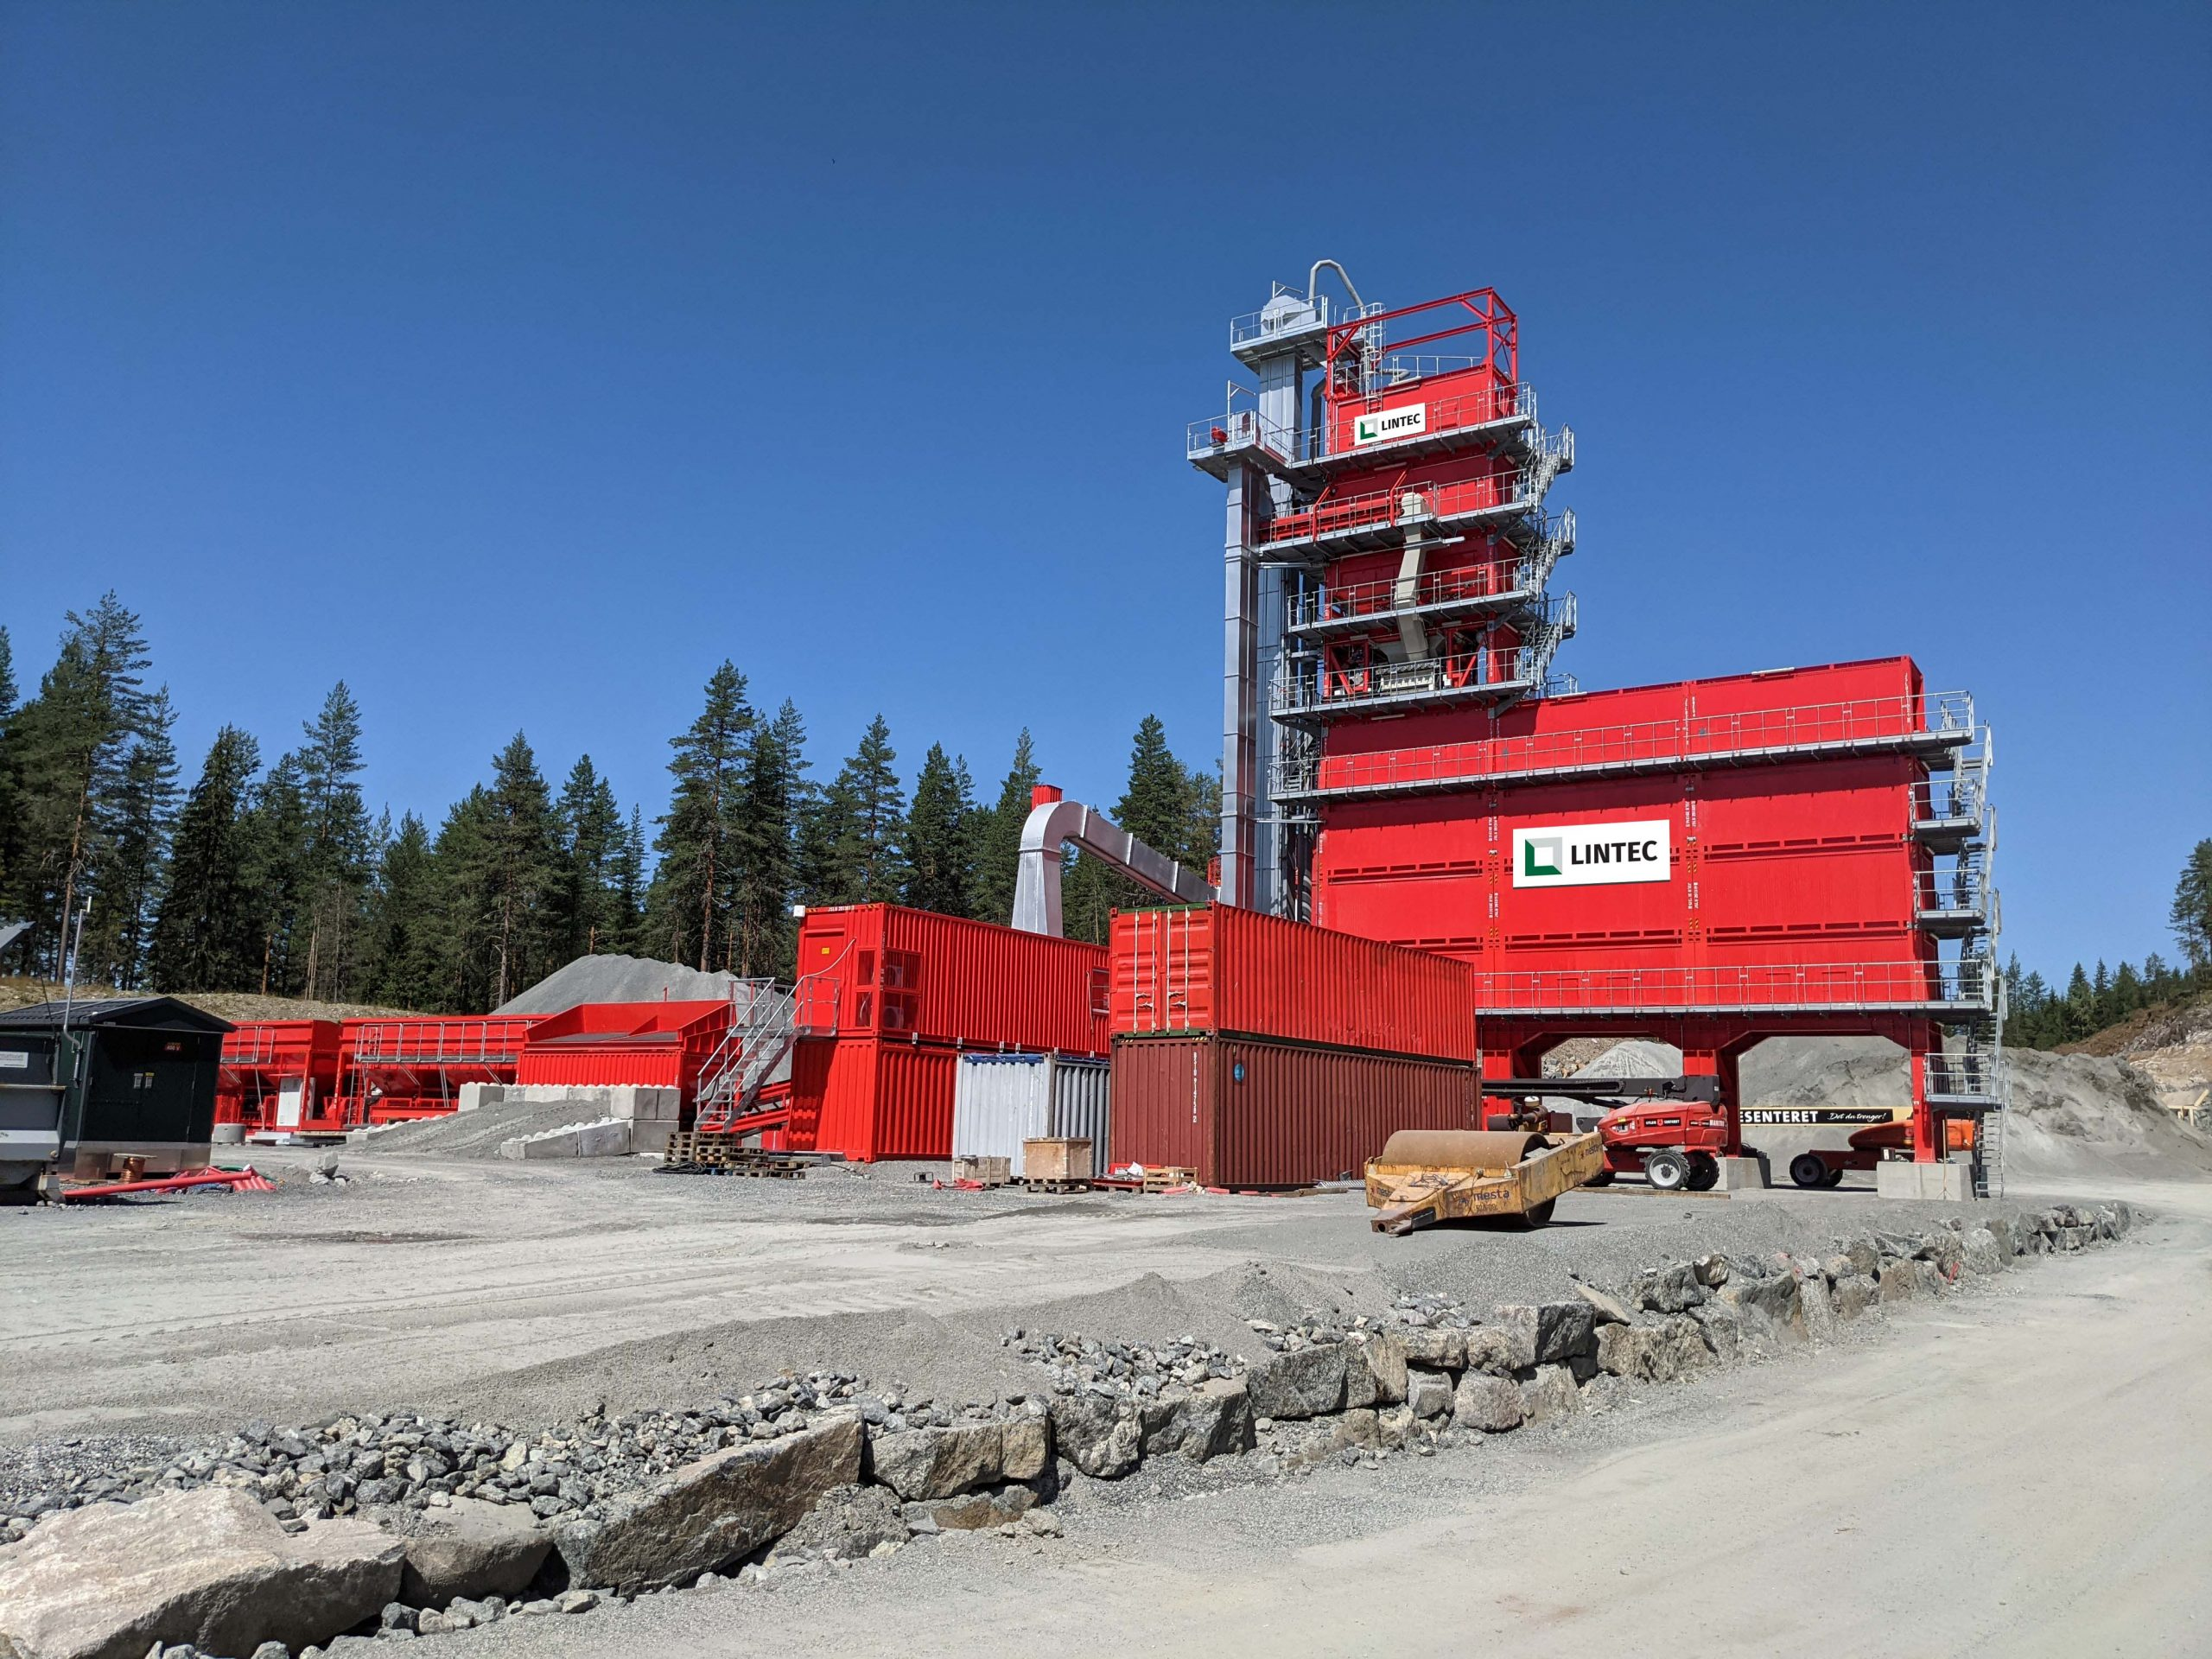 Lintec asphalt plant used by BRANI for local projects in Norway